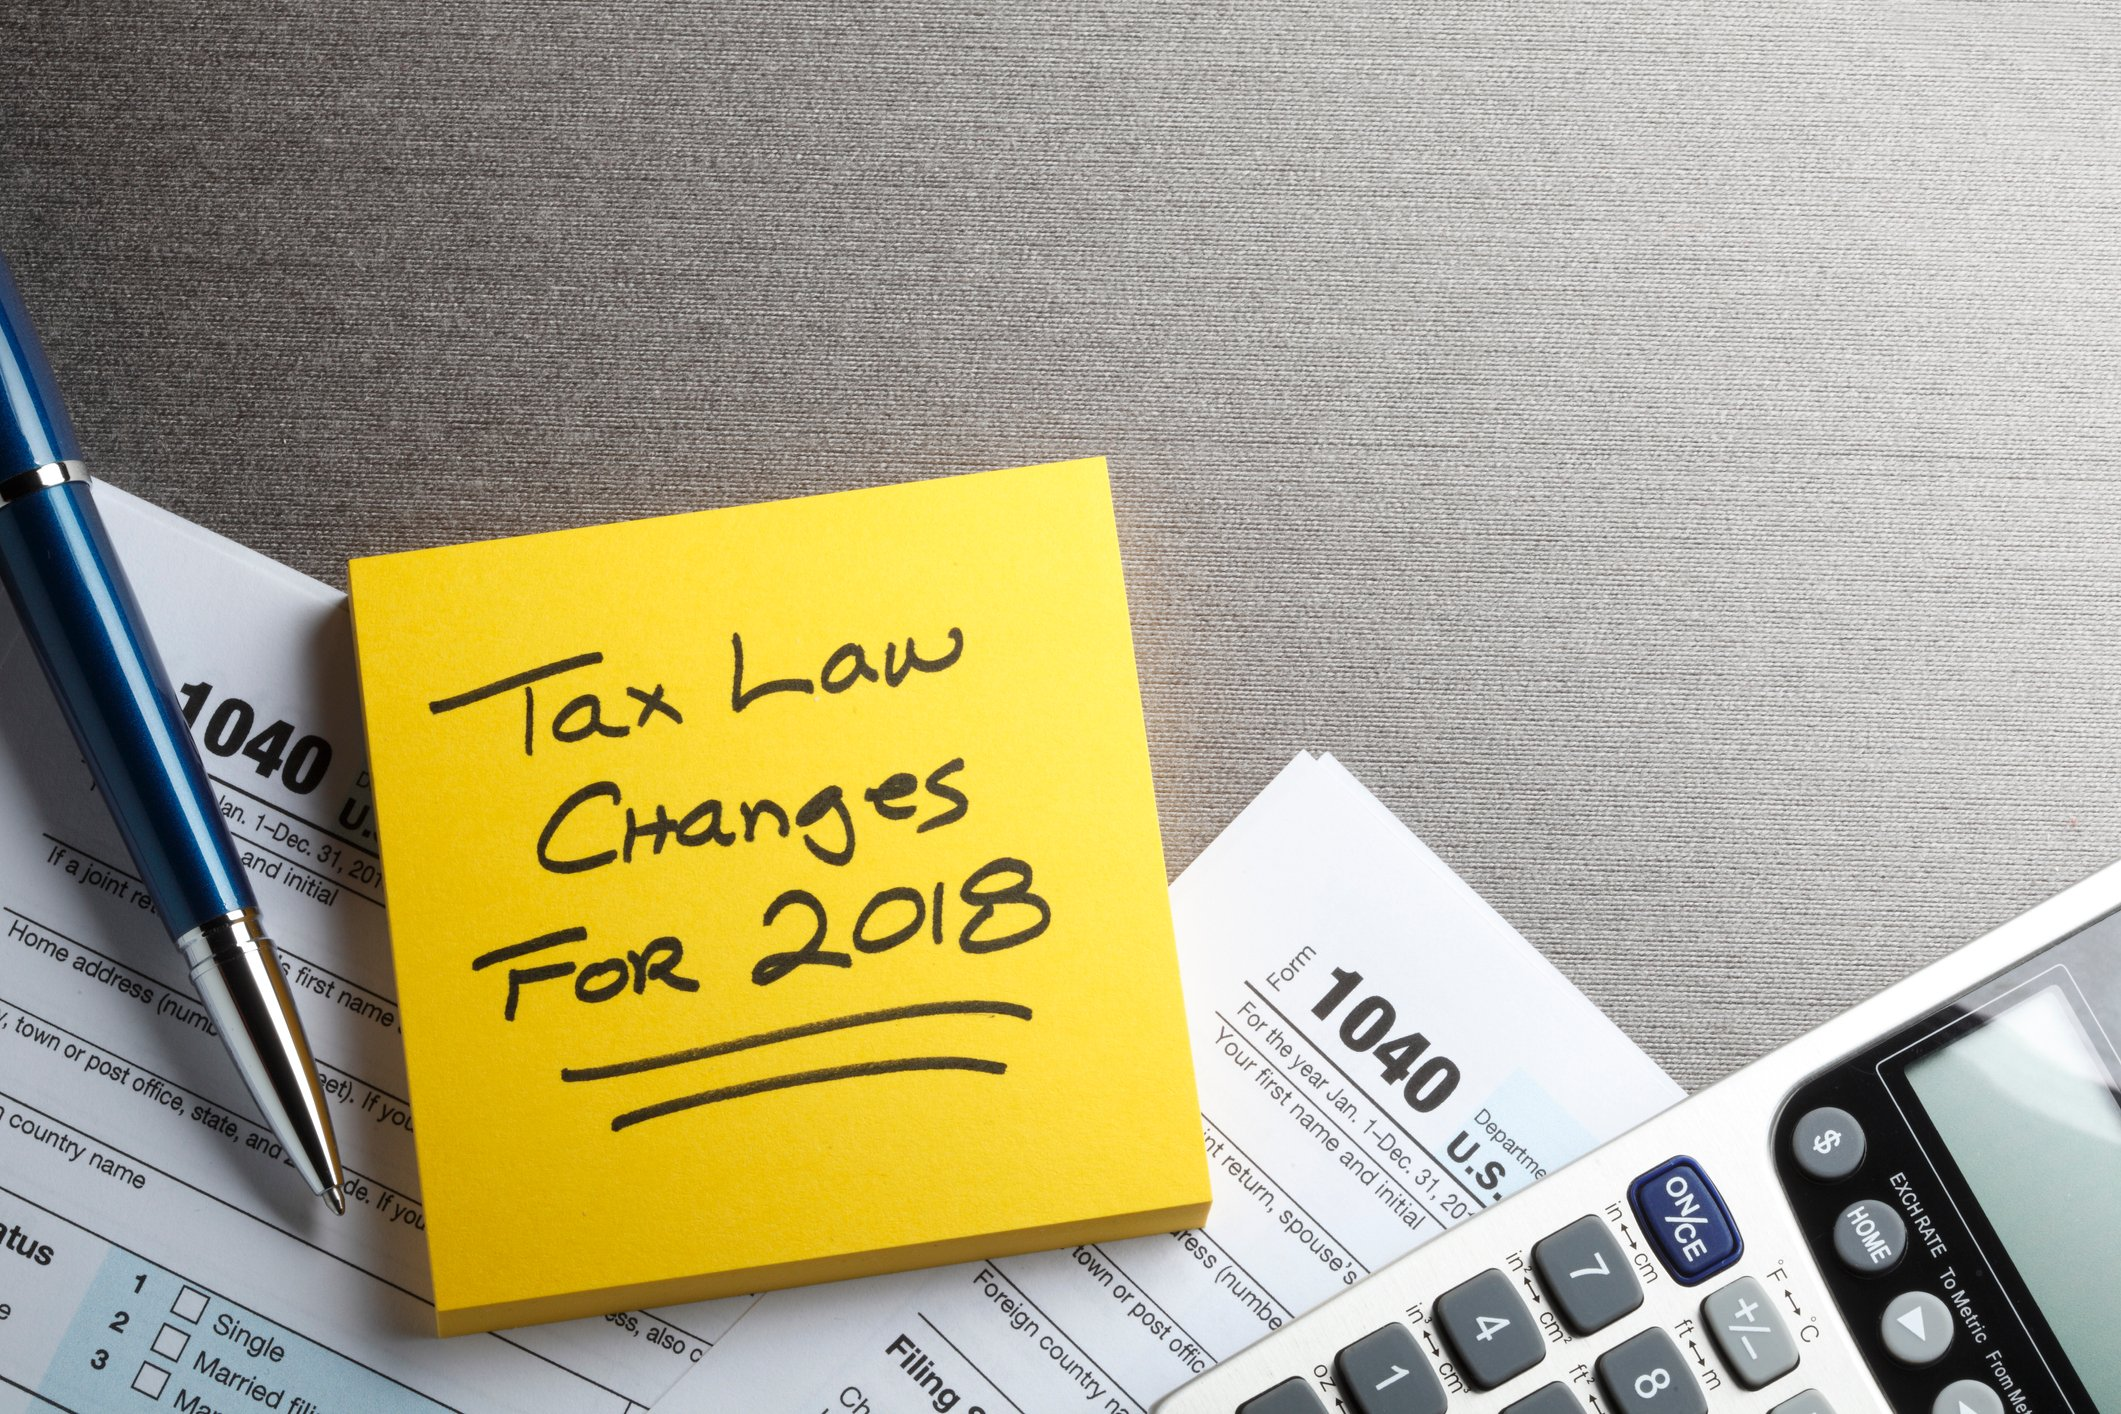 Tax-Form-With-Reminder-Of-New-Tax-Laws-Attached-913197022_2125x1416 (1)